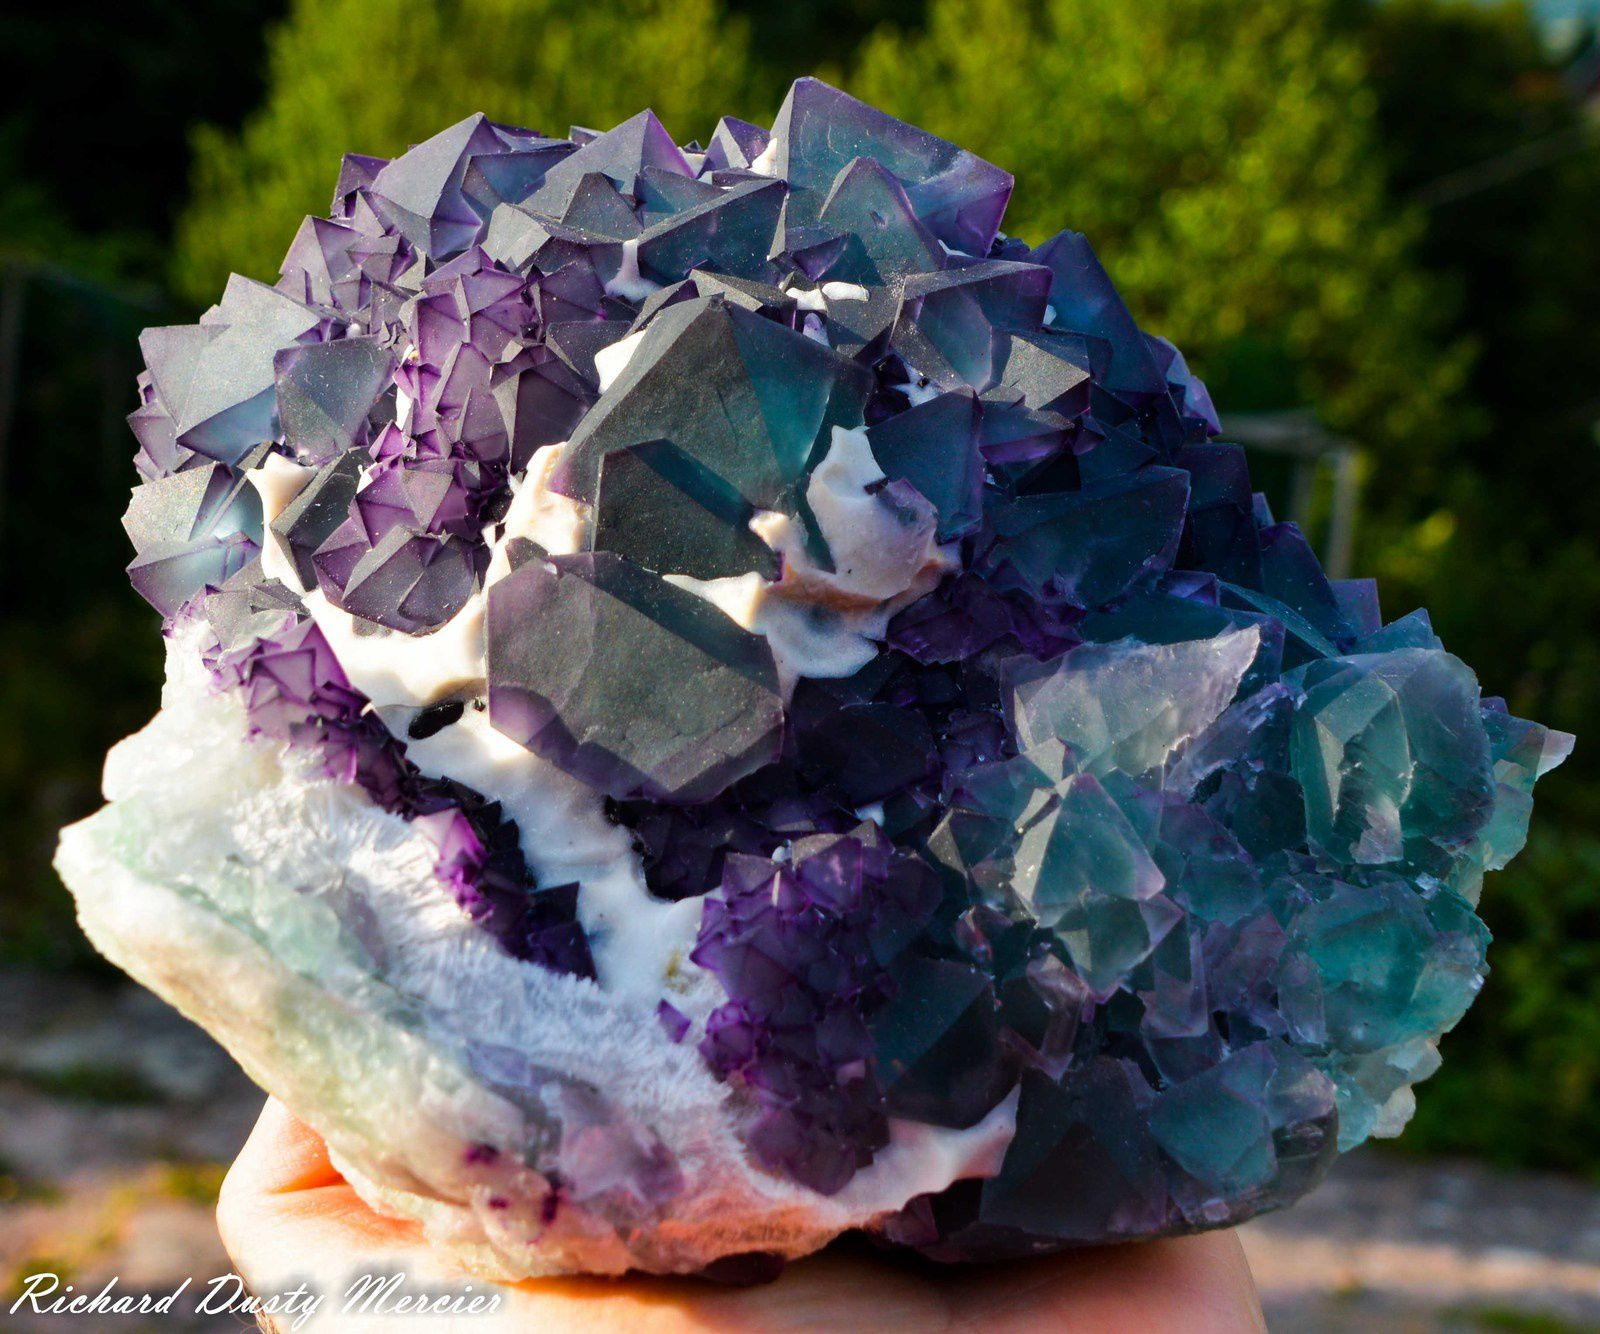 Fluorite octahedron (Octoédre) from De'an Mine, Jiangxi, China